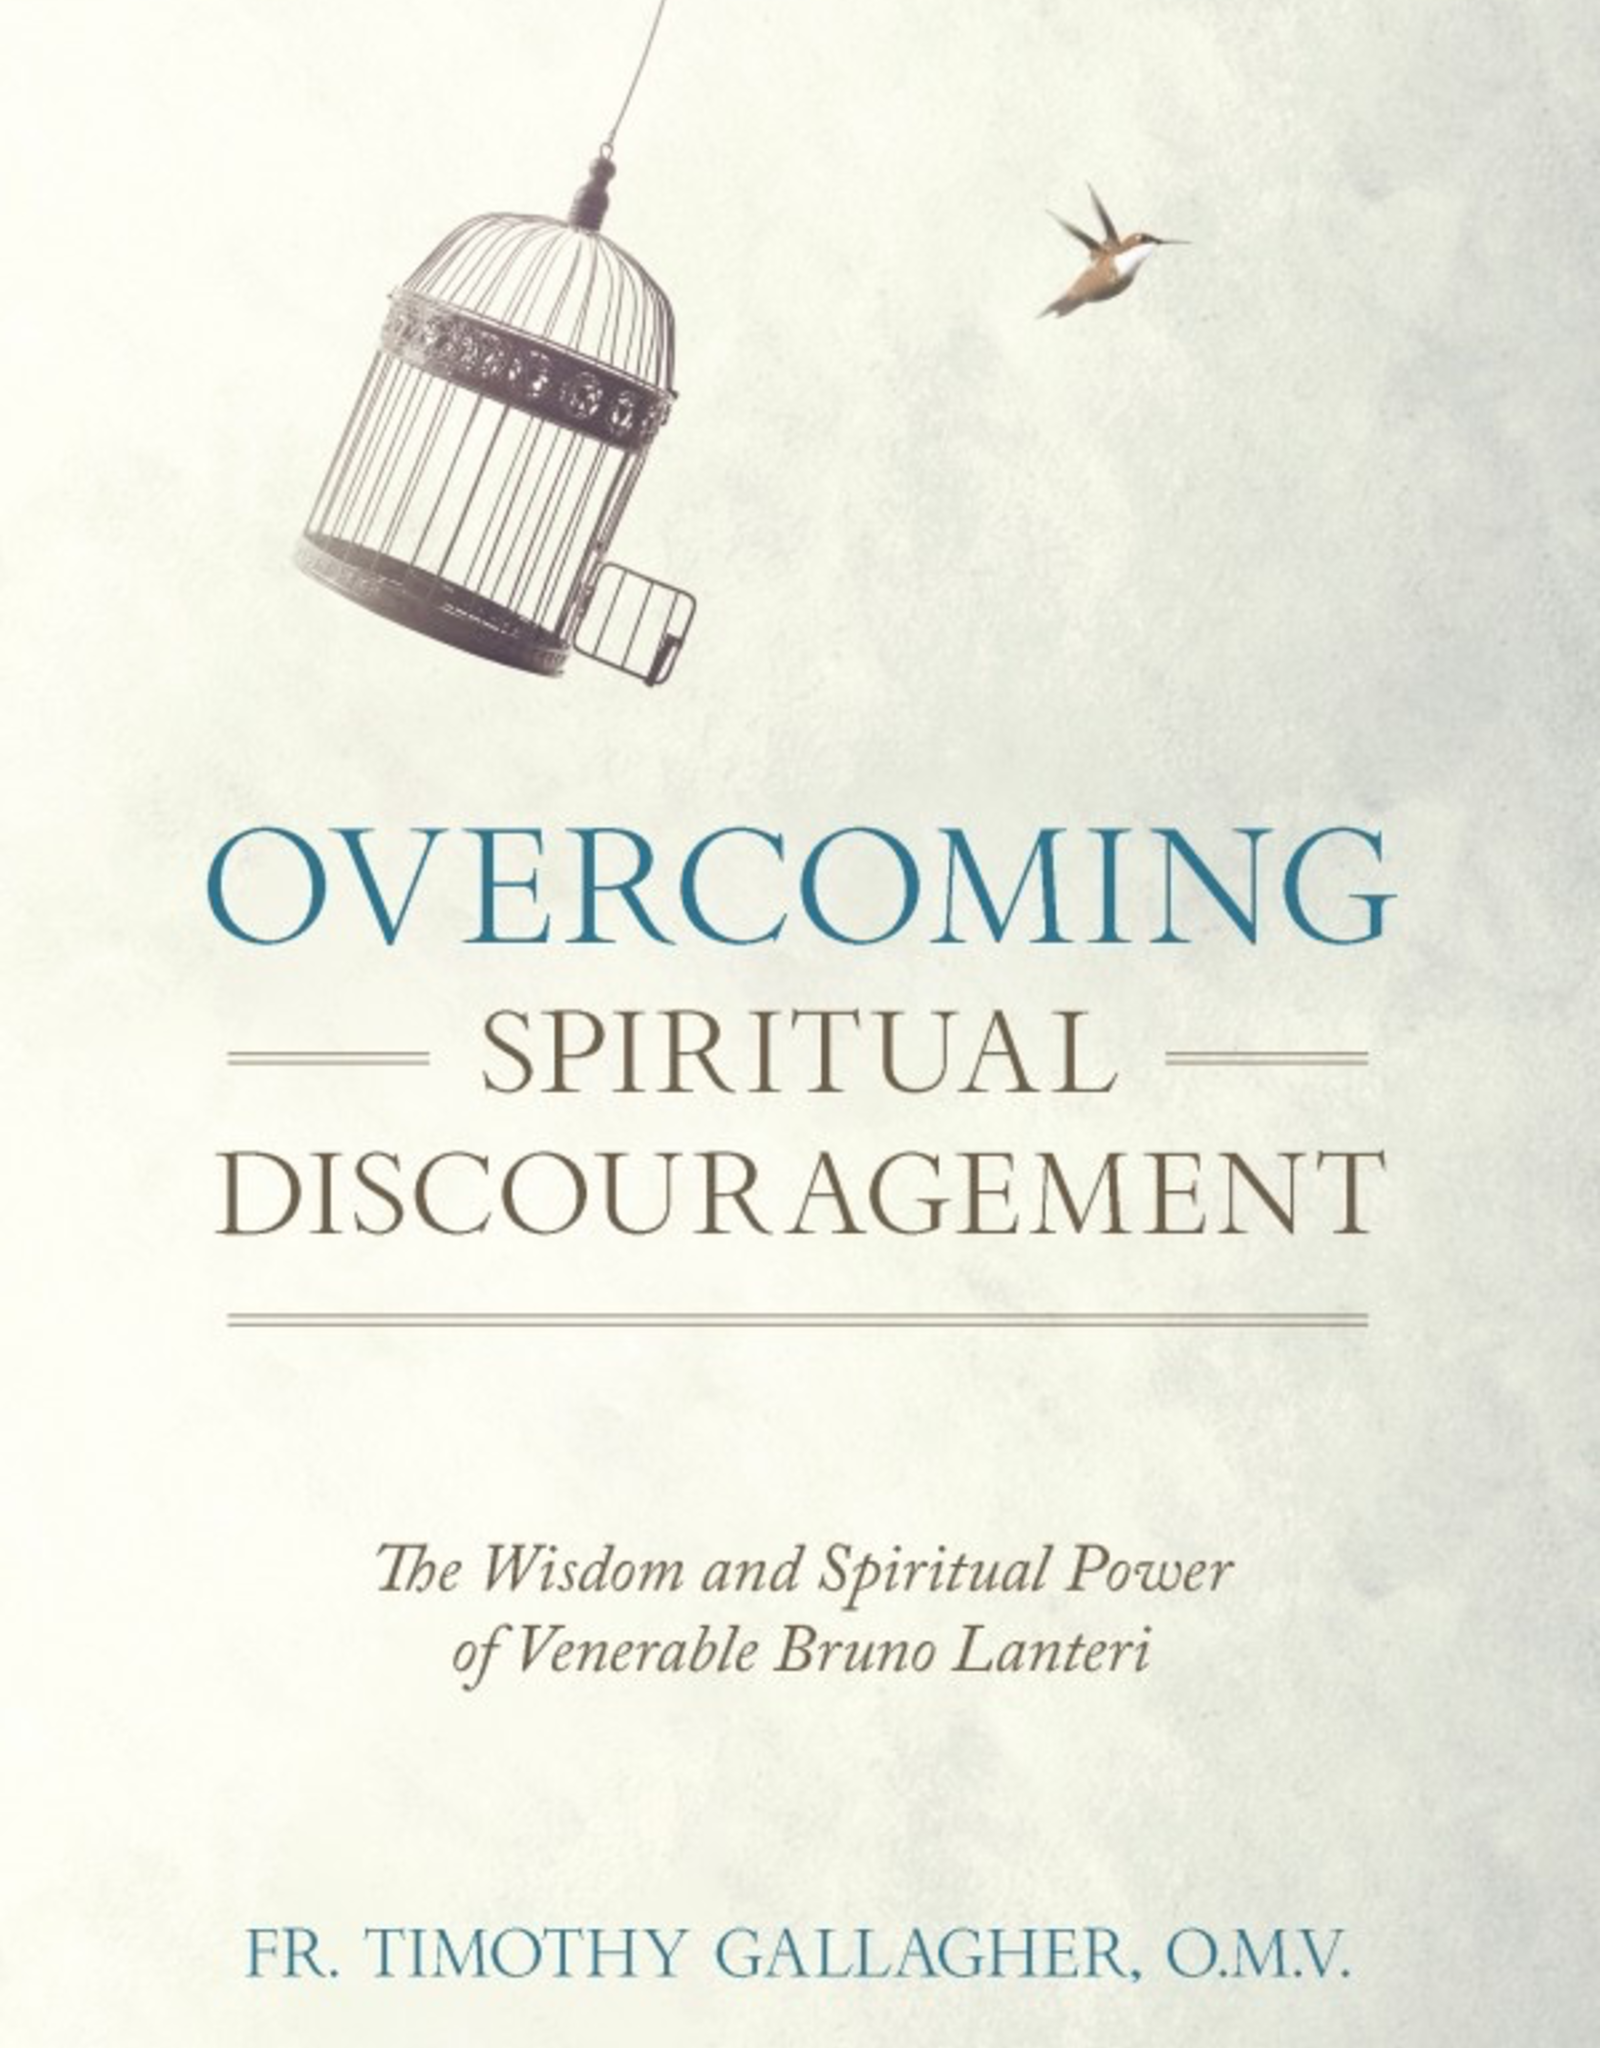 Sophia Institute Overcoming Spirtual Discouragement:  The Wisdom and Spirtual Power of Venerable Bruno Lanteri, by Timothy Gallagher (paperback)